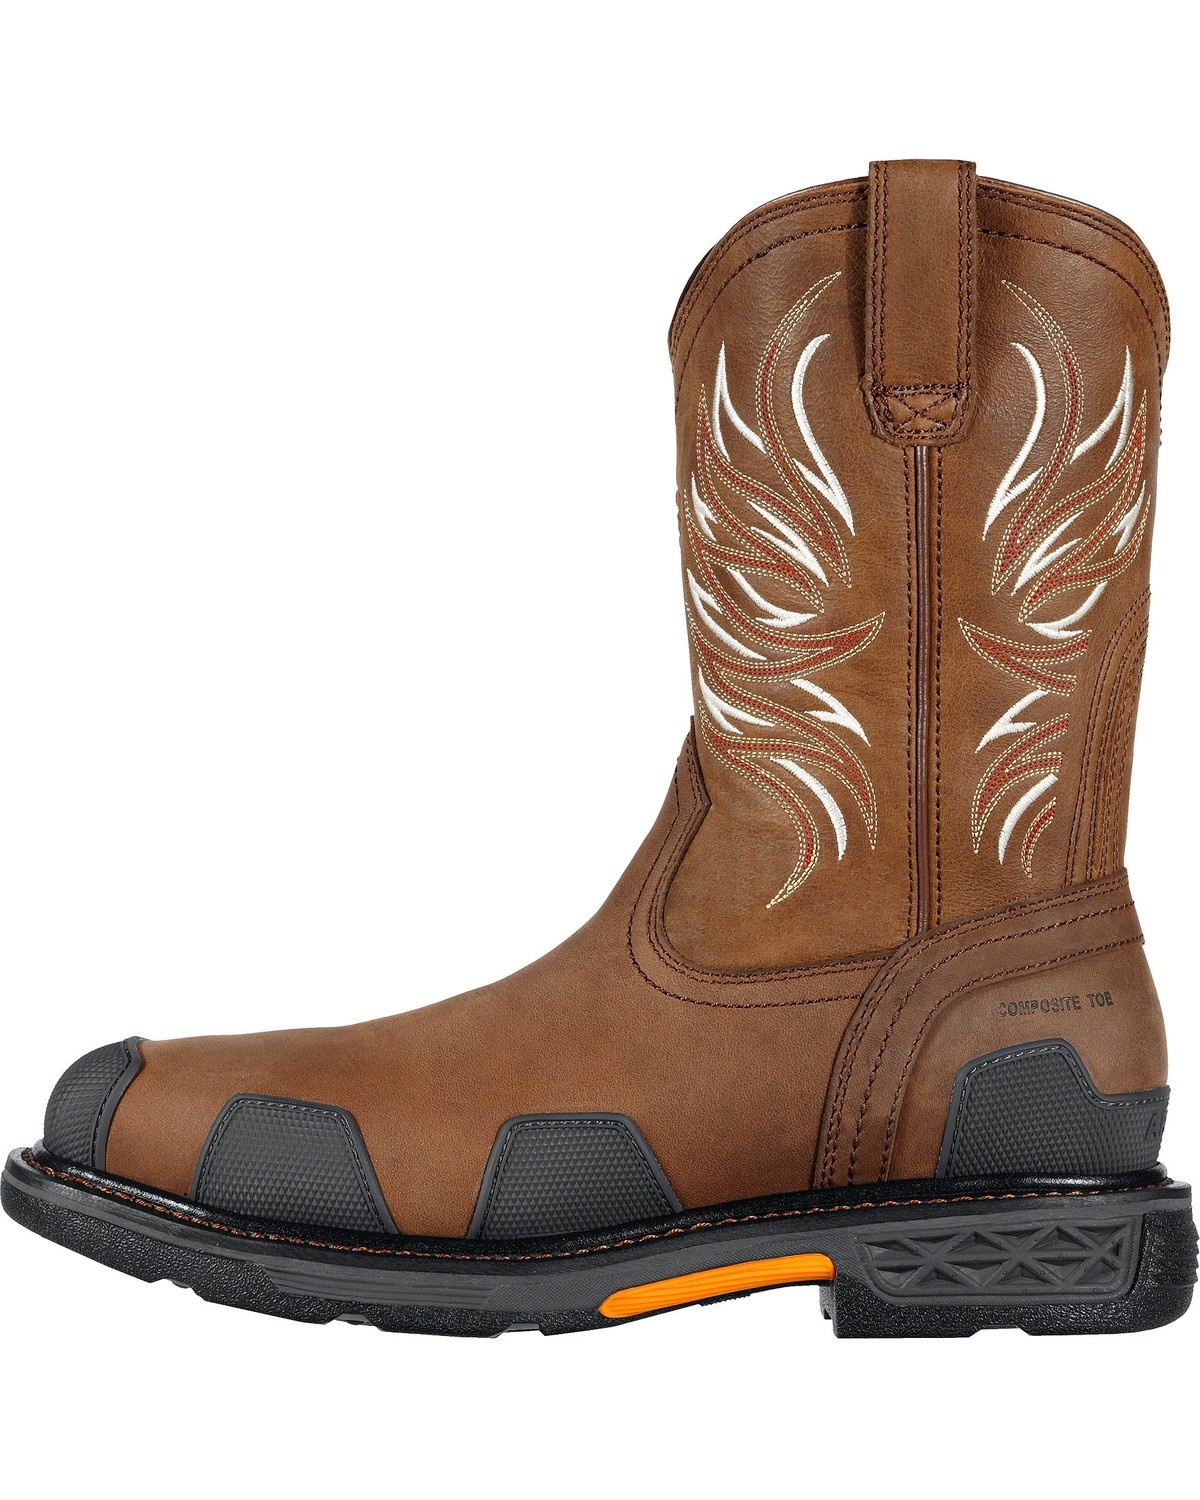 Ariat Overdrive Pull-On Work Boots - Composition Toe | Sheplers